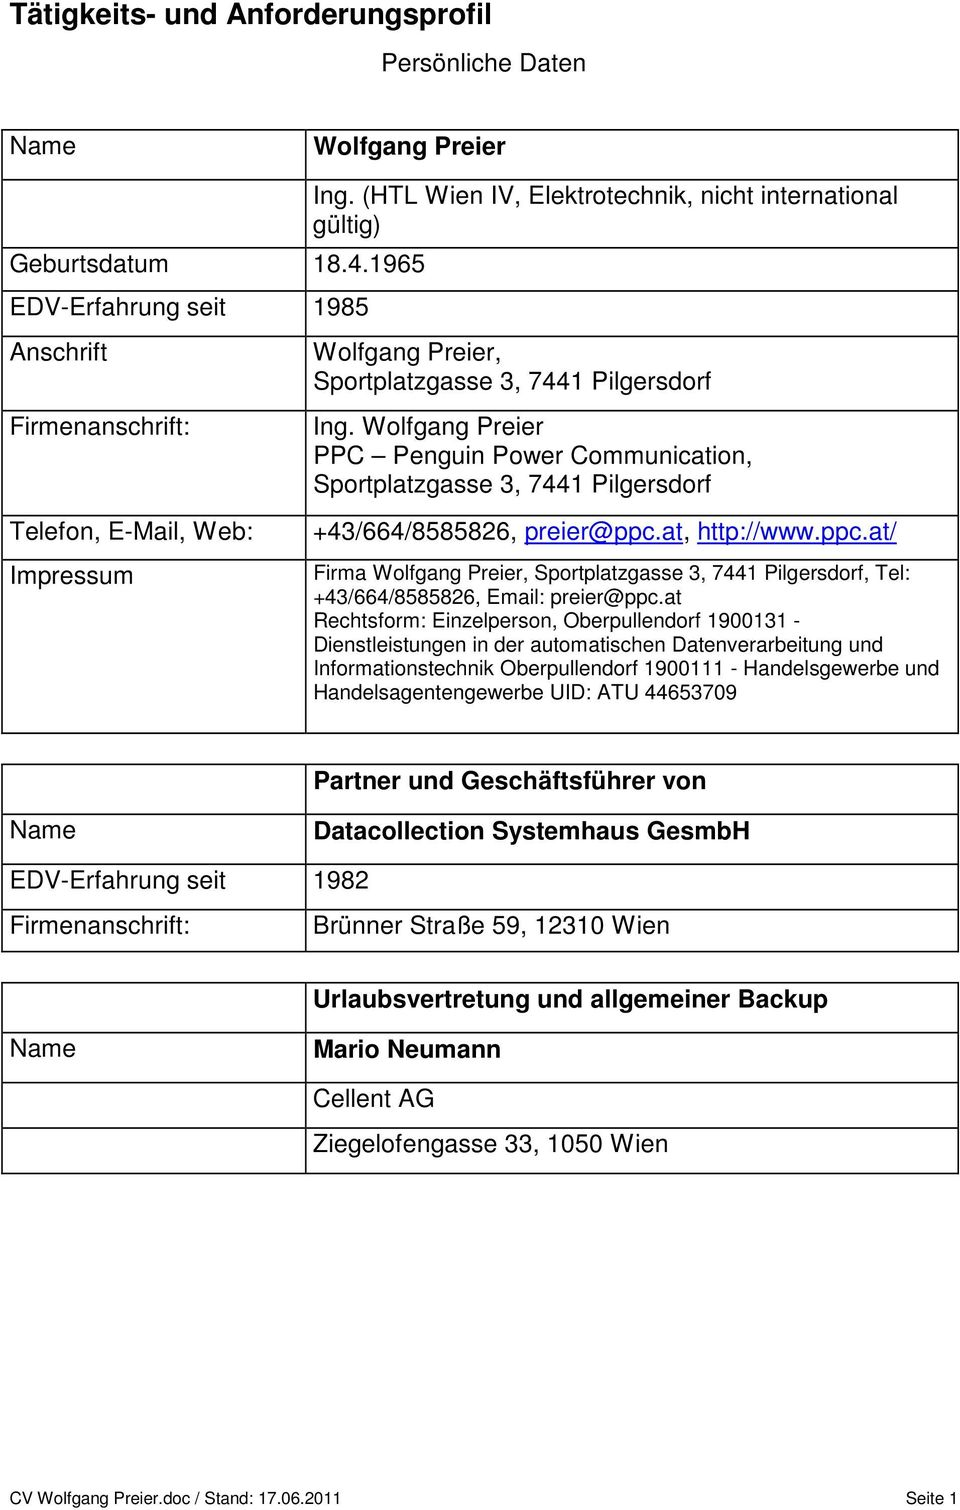 Wolfgang Preier PPC Penguin Power Communication, Sportplatzgasse 3, 7441 Pilgersdorf +43/664/8585826, preier@ppc.